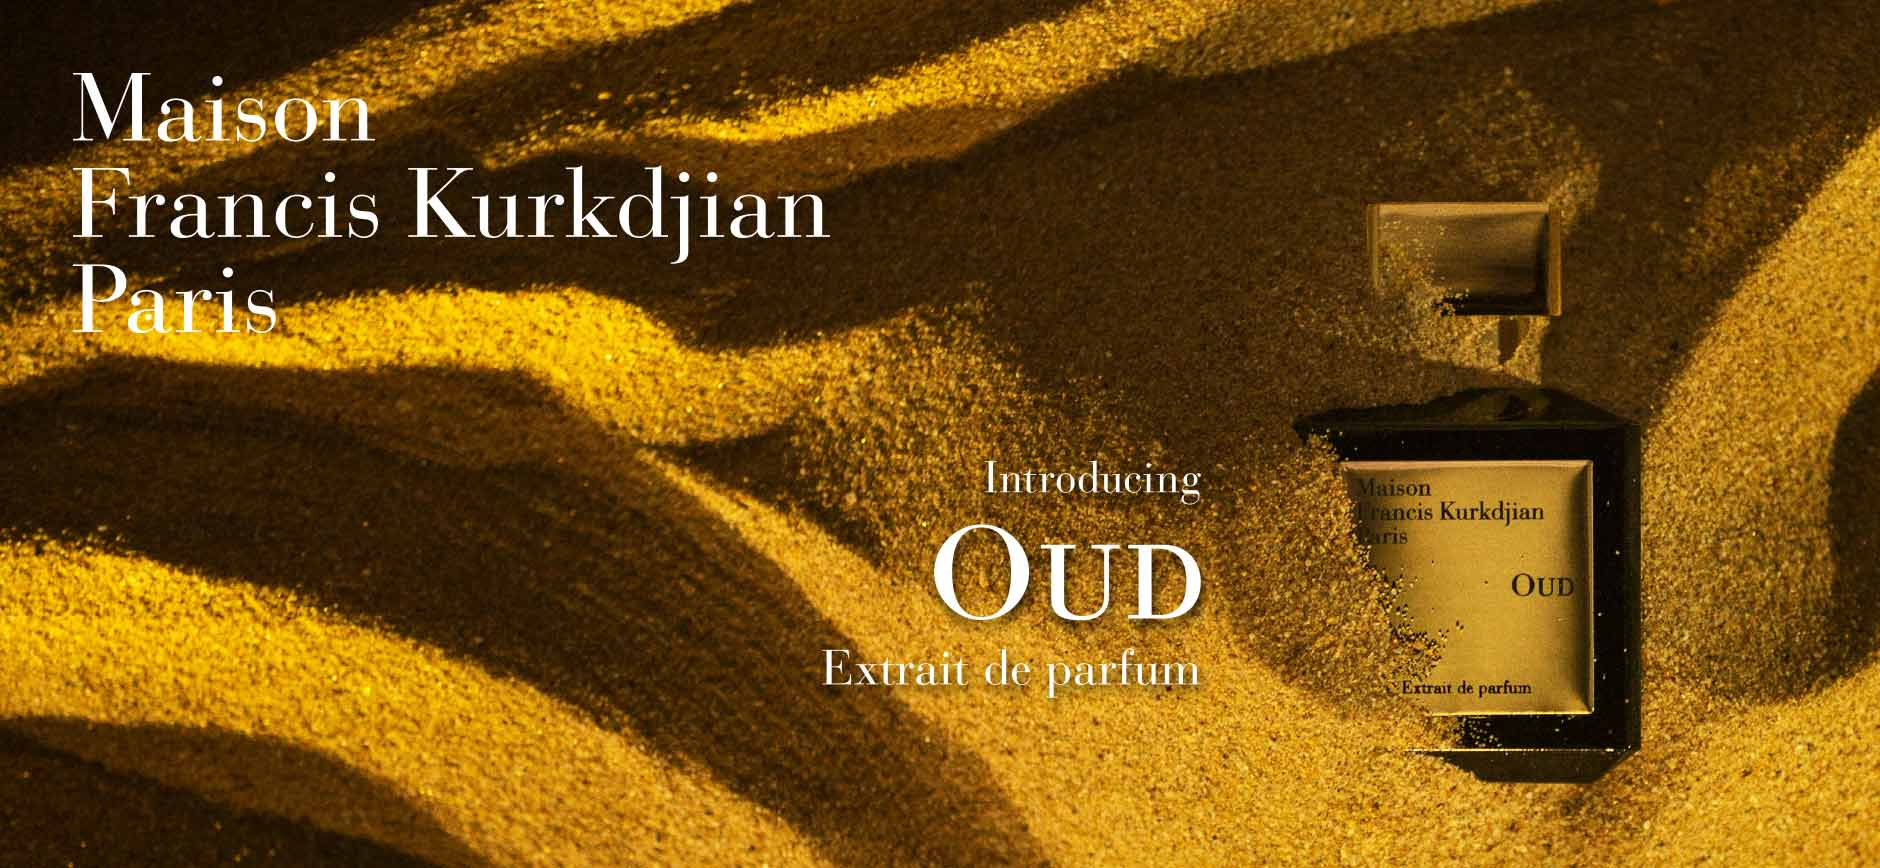 Maison Francis Kurkdjian Paris: Introducing Oud Extrait de parfum